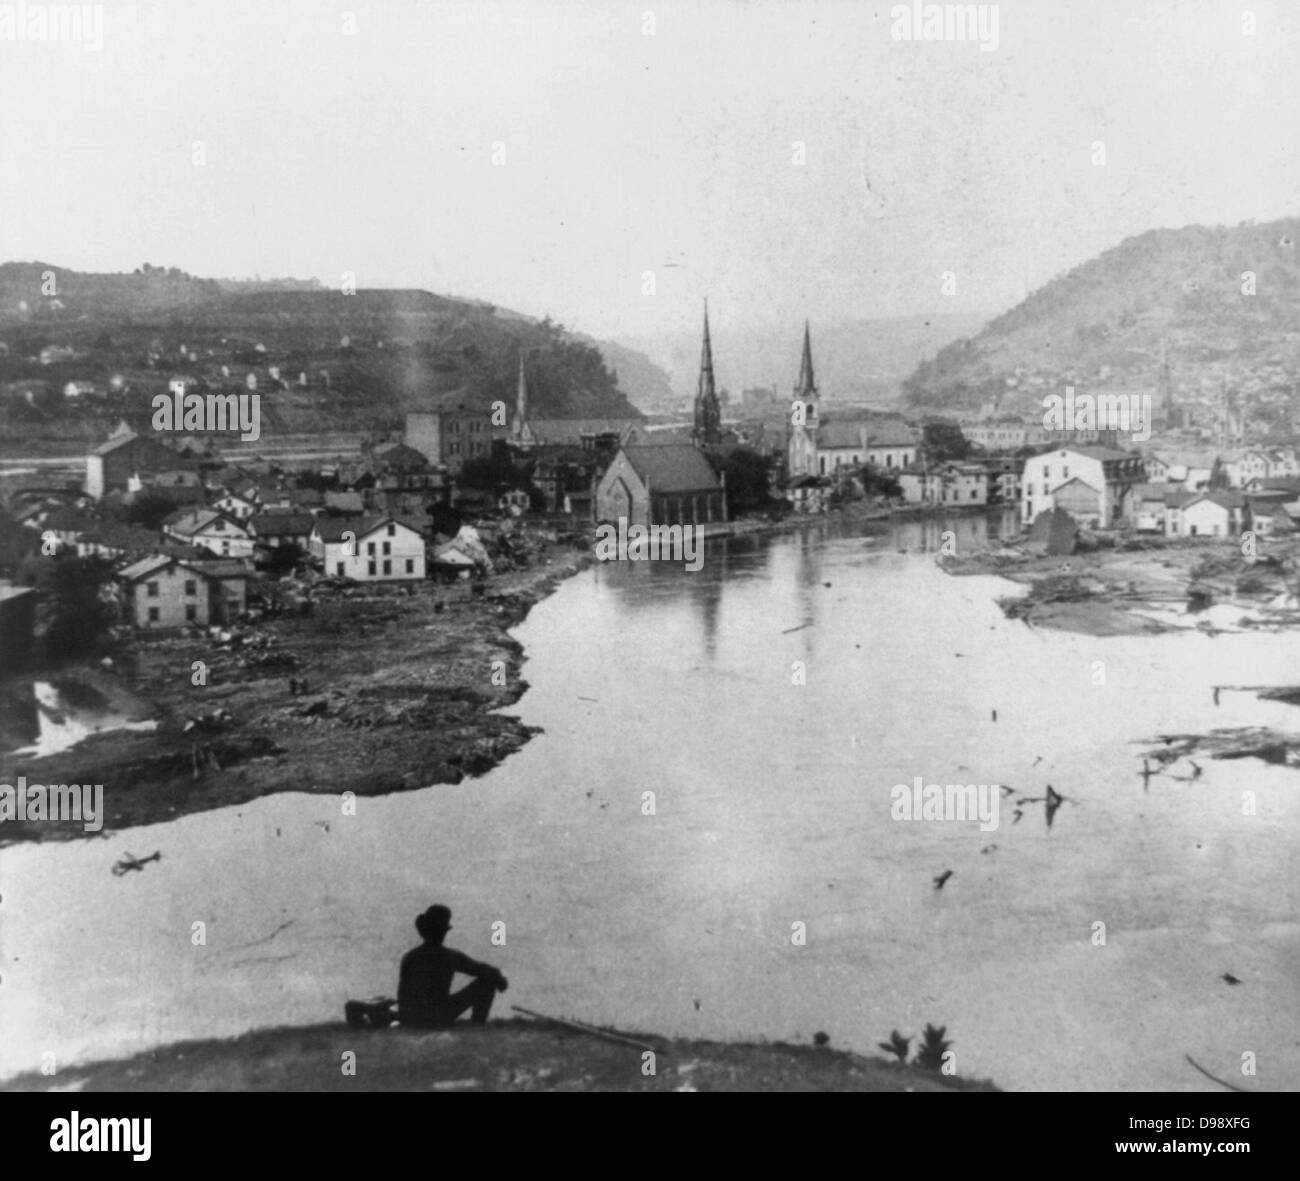 Johnstown disaster, May 31, 1889. Conemaugh Valley. photographic print on stereo card : stereograph. Man seated - Stock Image